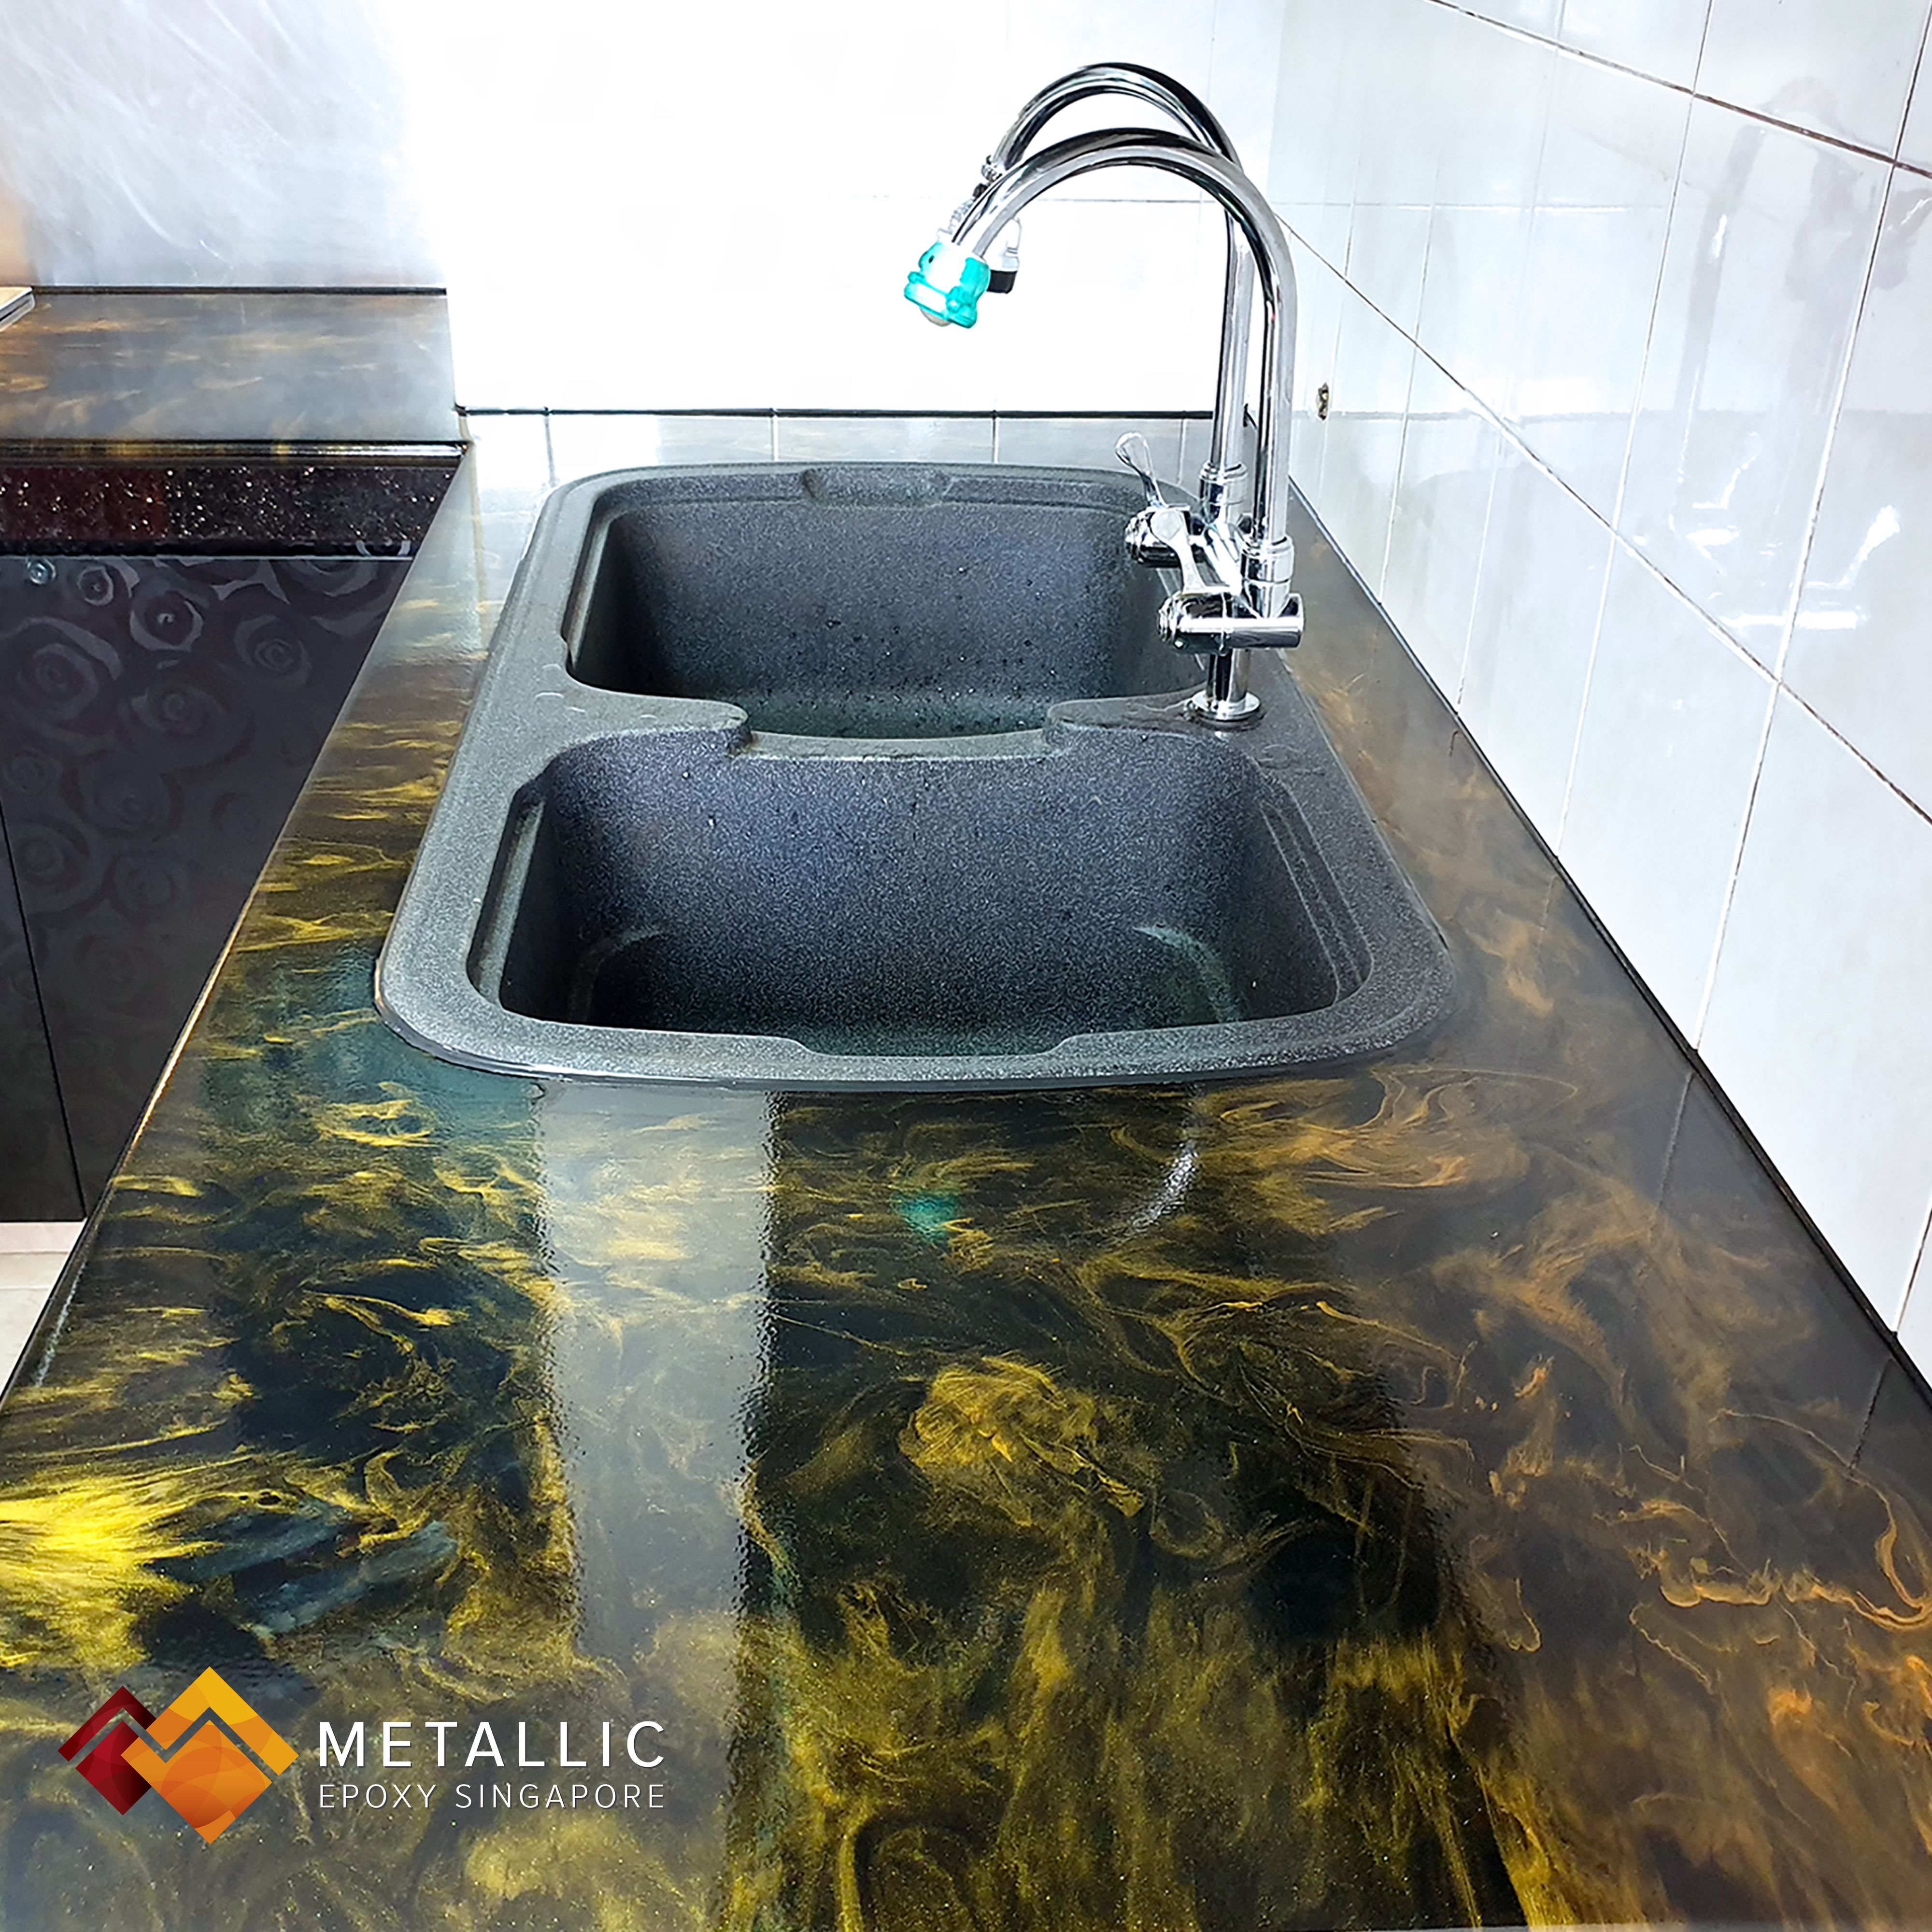 What was once an unsightly epoxy countertop done by an